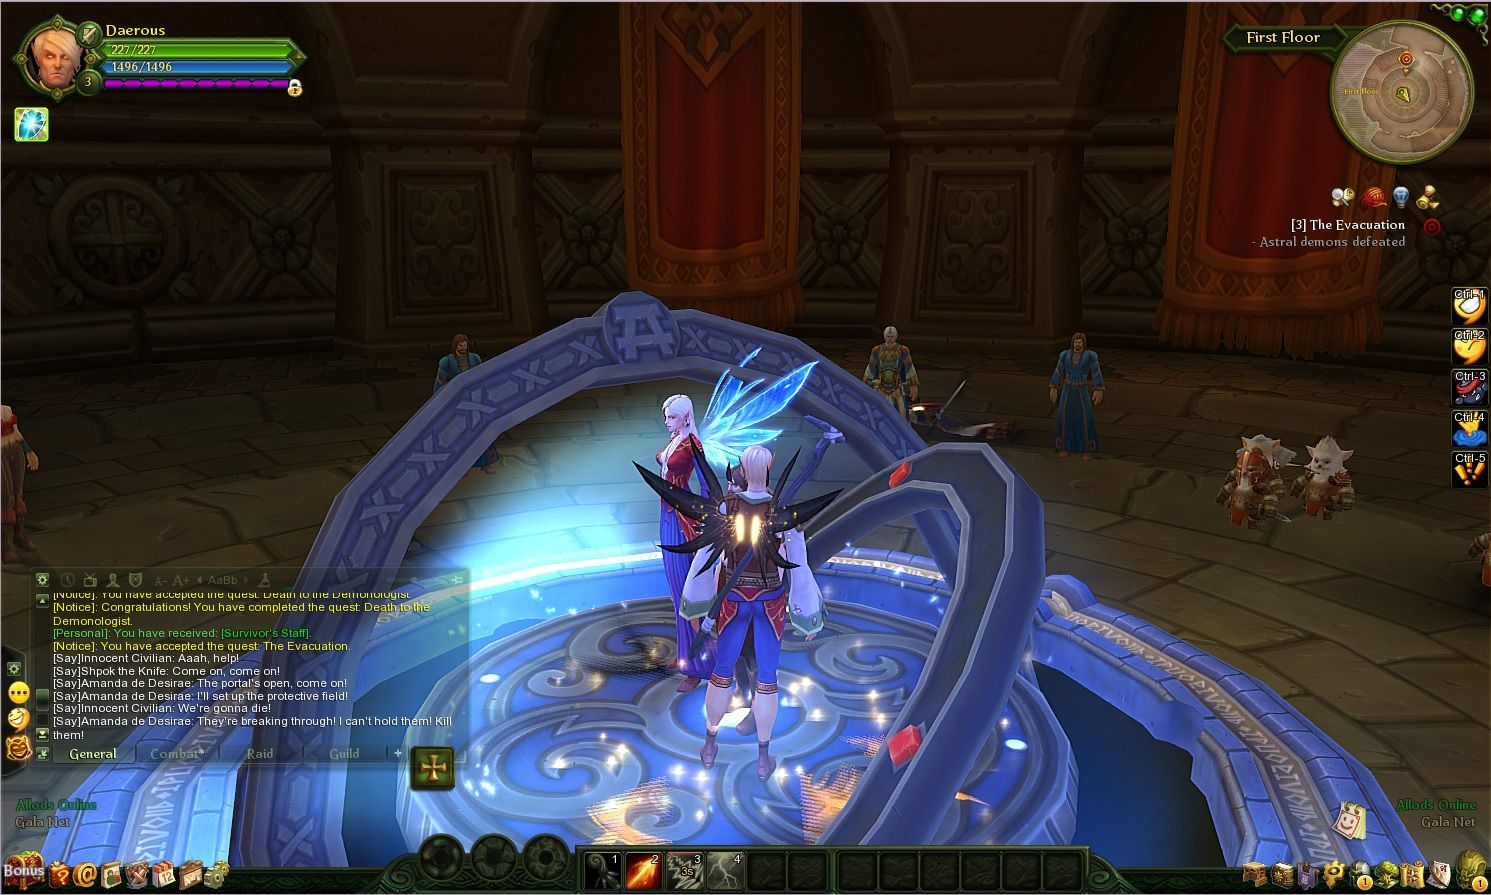 Pin by ronyroy6799 on Extraupdate World of warcraft game